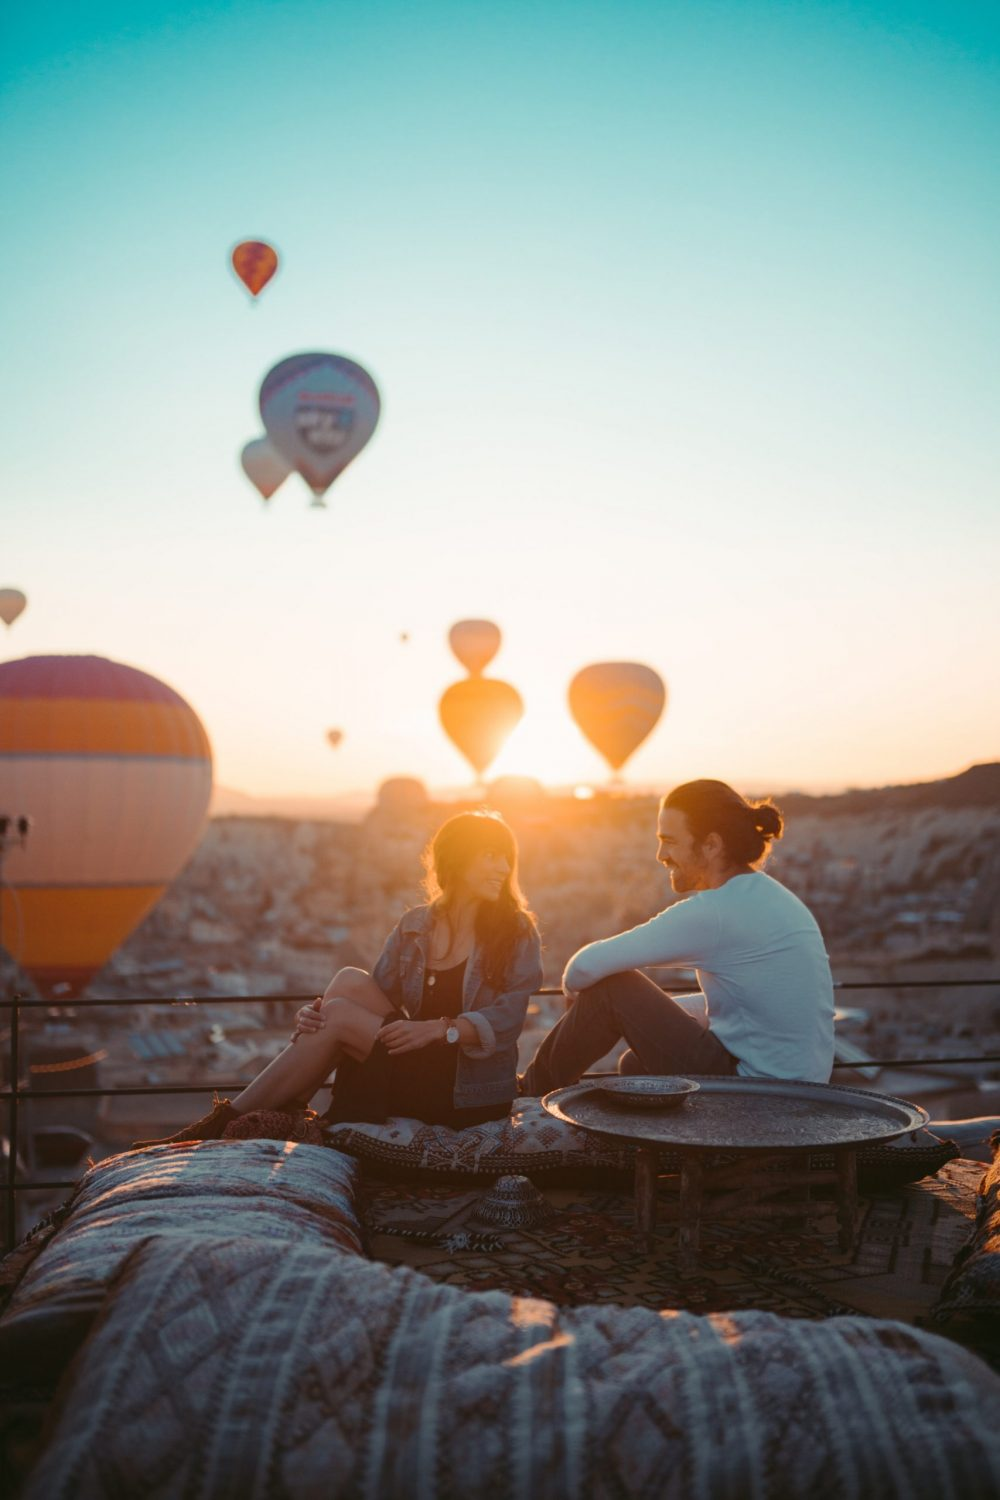 Good Pick Up Lines - Laughing Couple and Hot Air Balloons